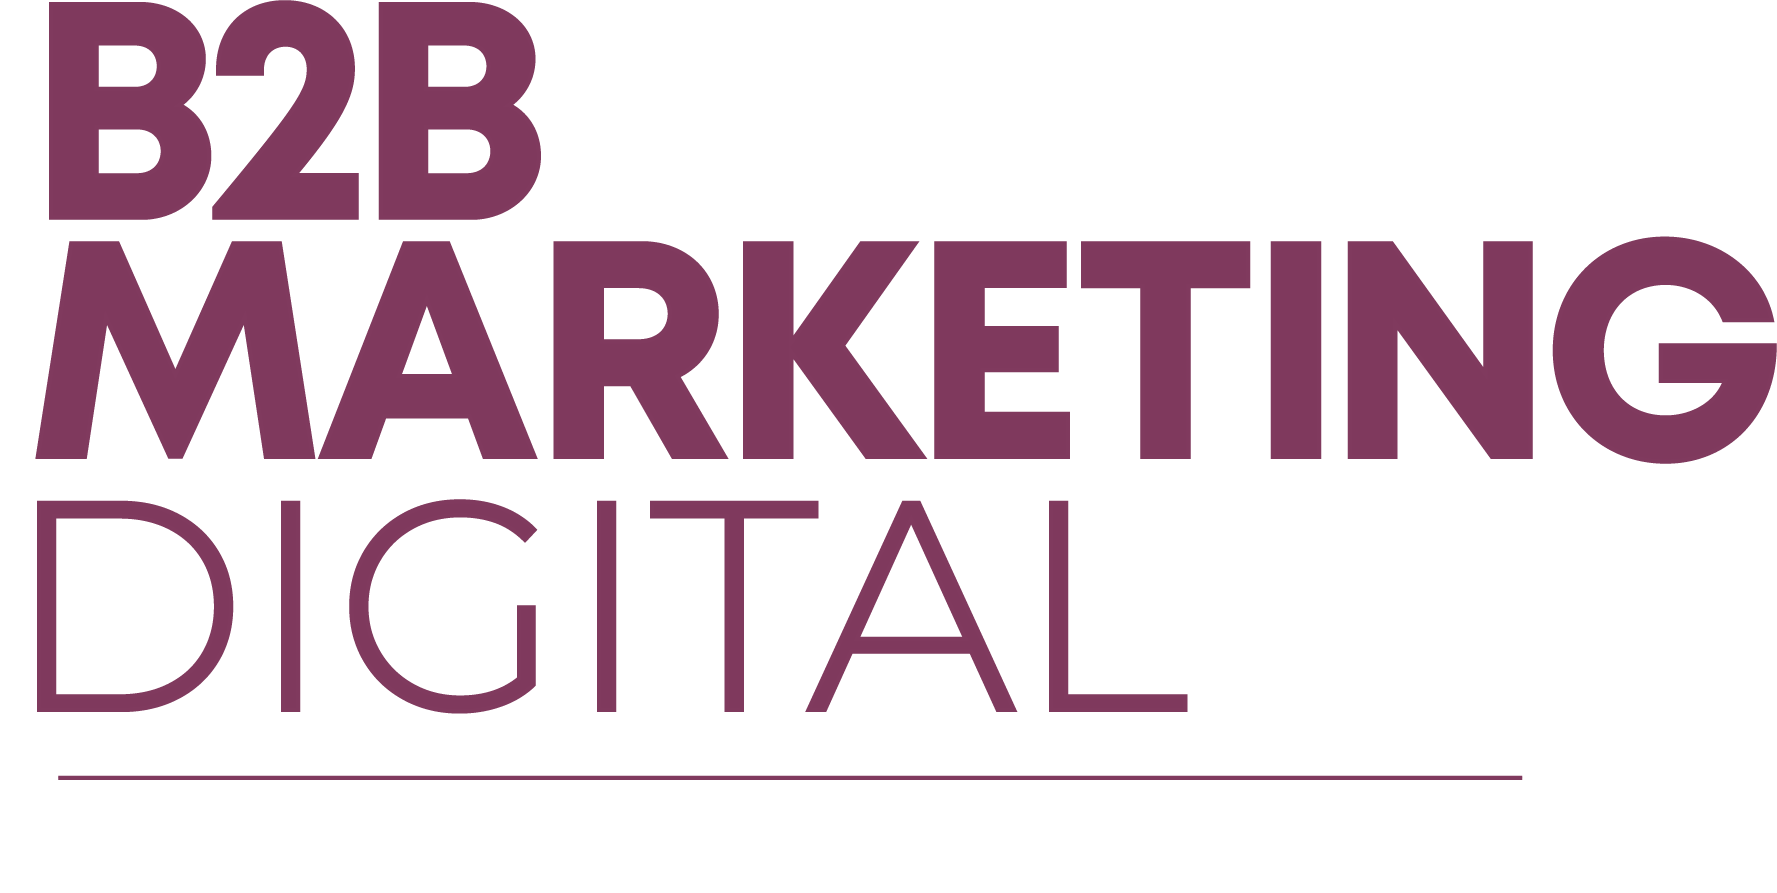 B2B Marketing Digital